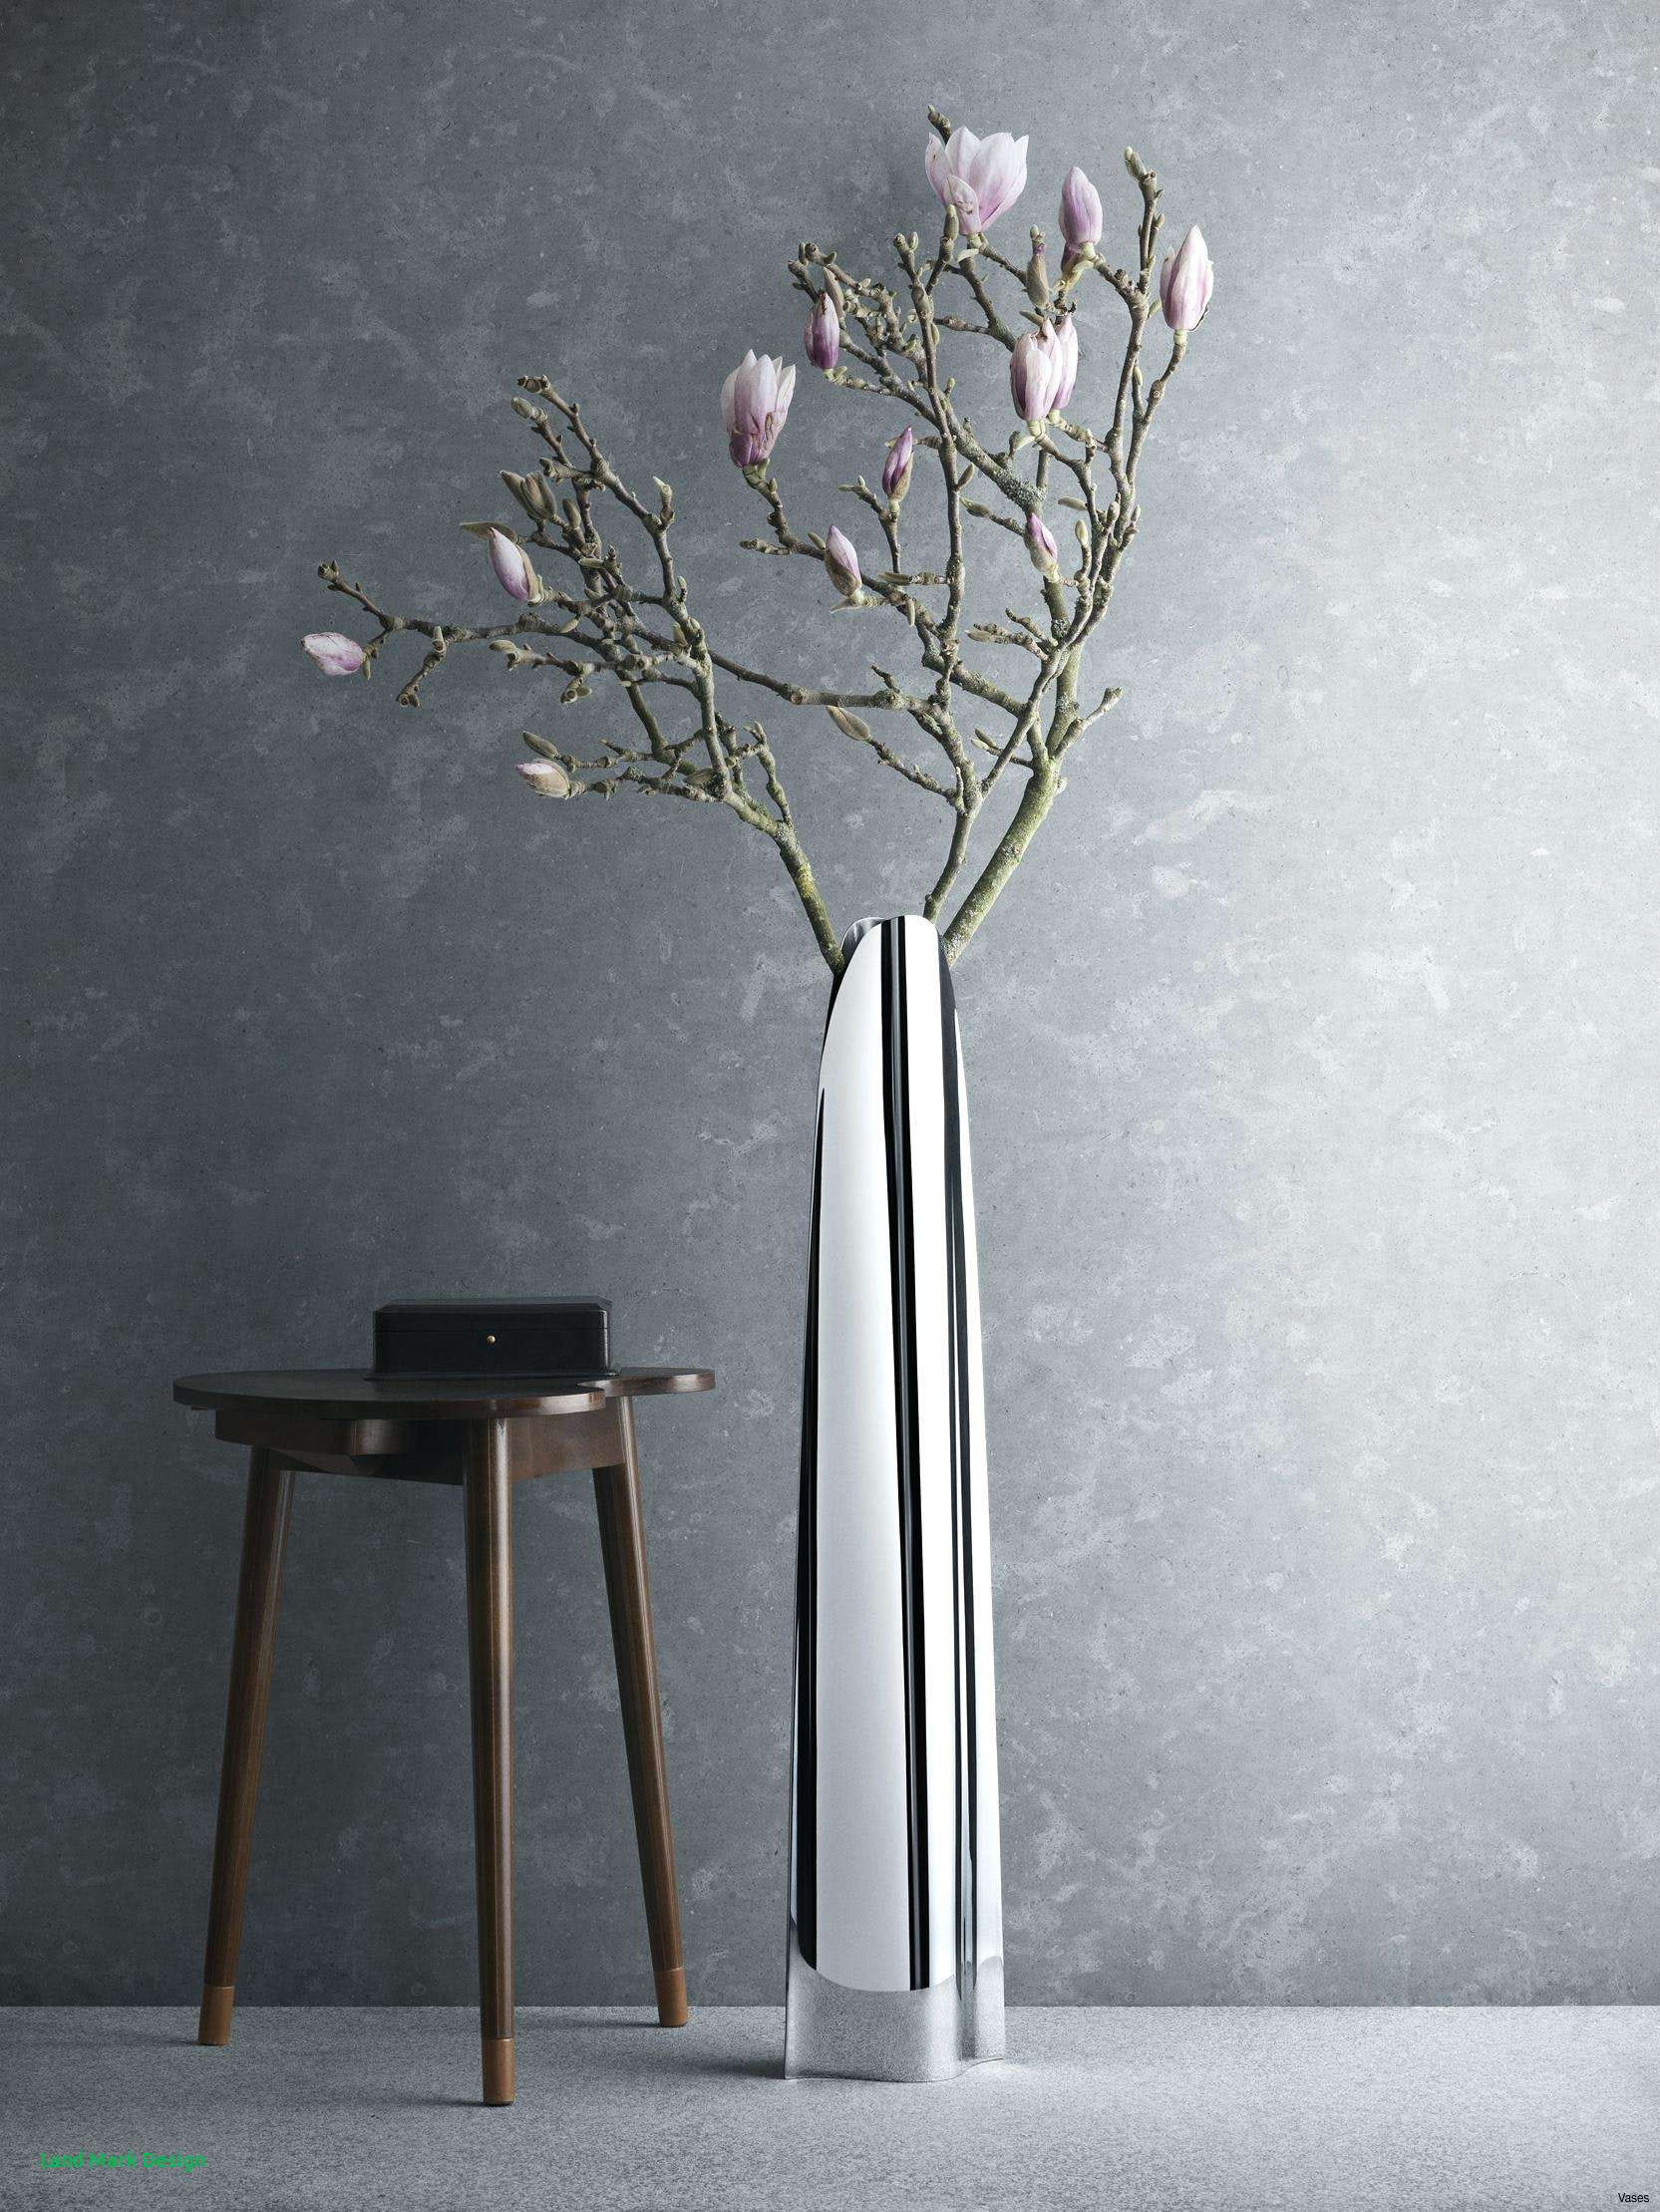 3d printed vase of modern tall vases pictures 3d printed white vase living room decor within modern tall vases pics tall floor vases contemporary design of modern tall vases pictures 3d printed